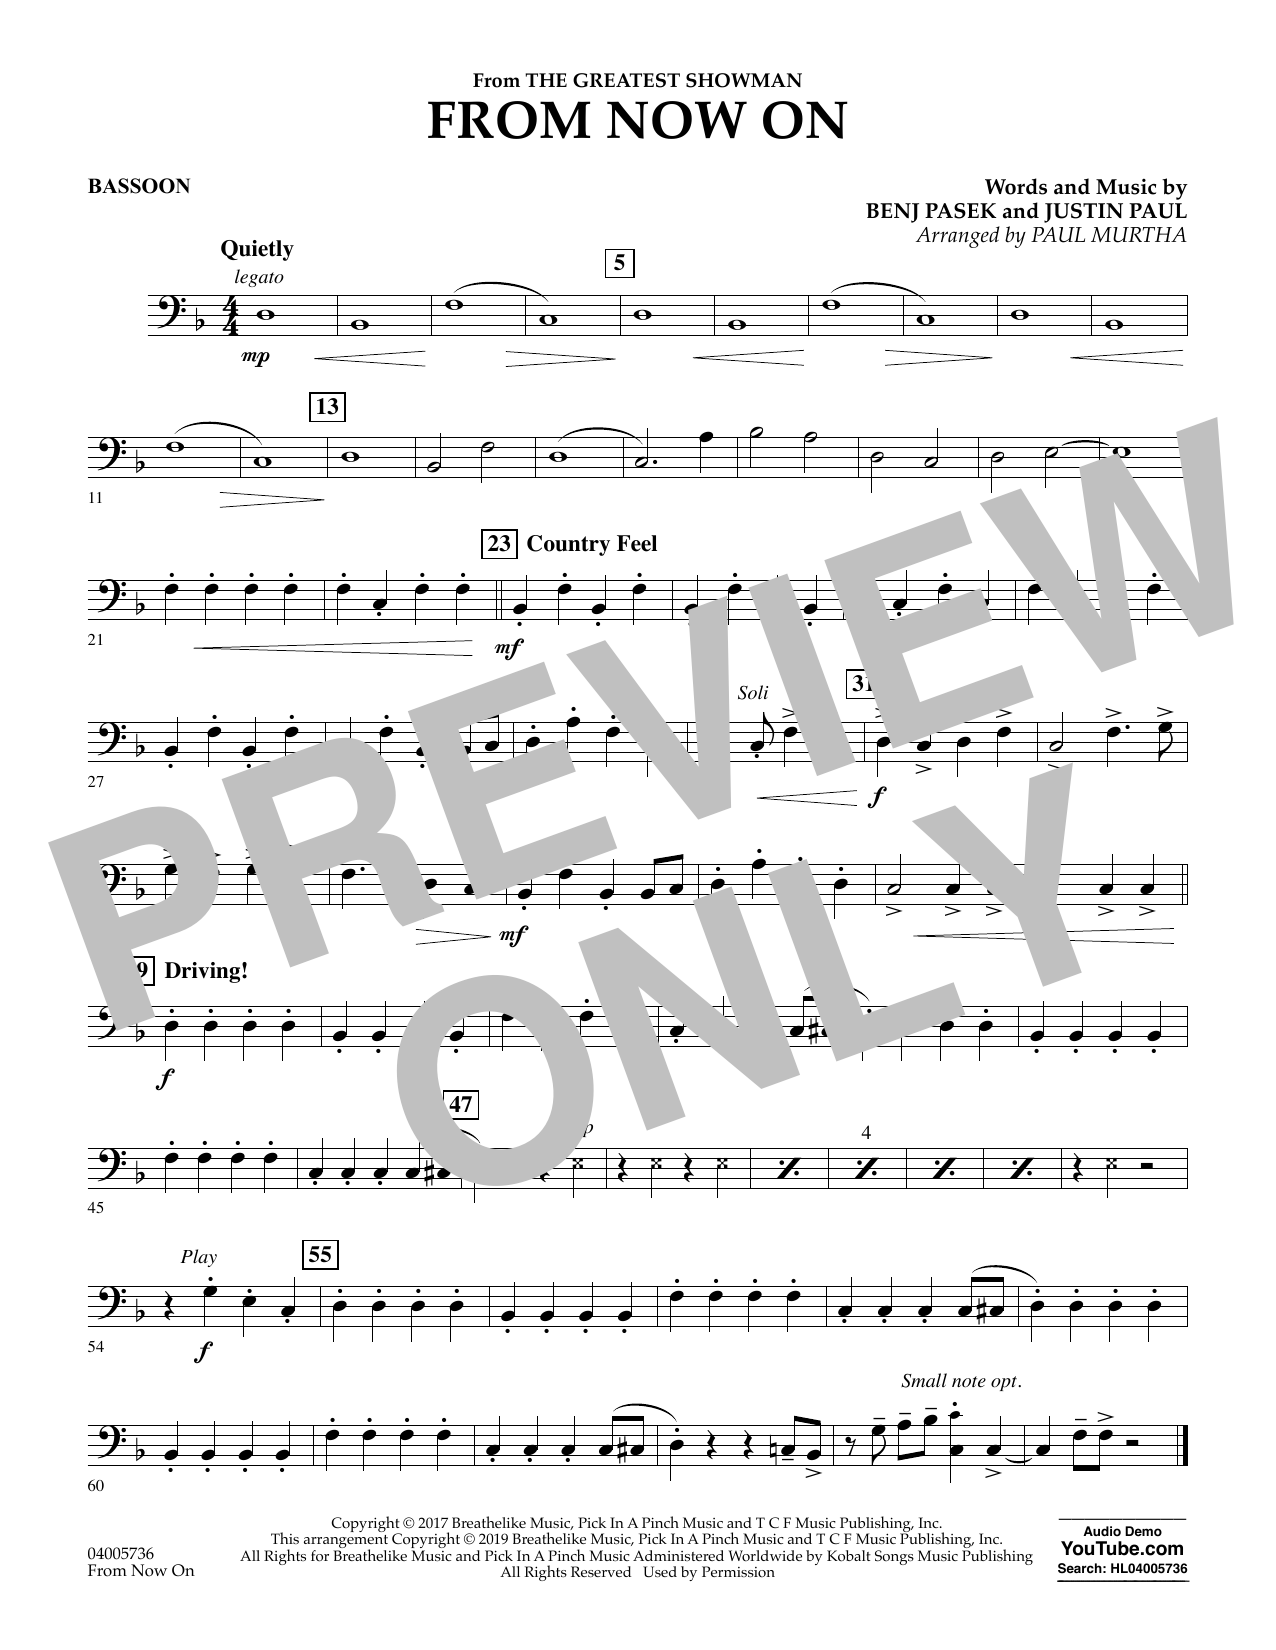 From Now On (from The Greatest Showman) (arr. Paul Murtha) - Bassoon (Concert Band)